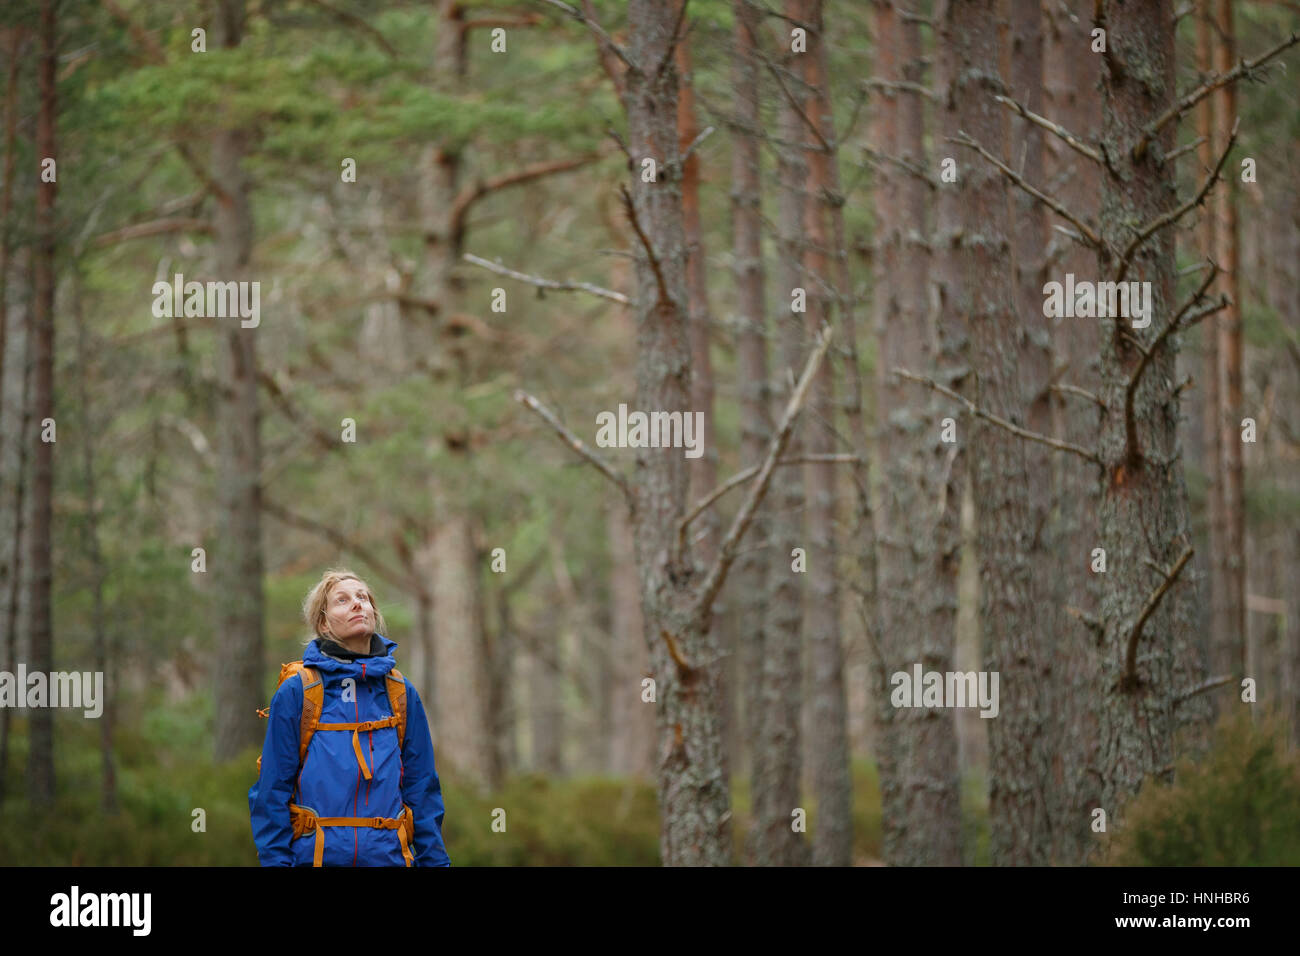 Woman hiking through a wood - Stock Image